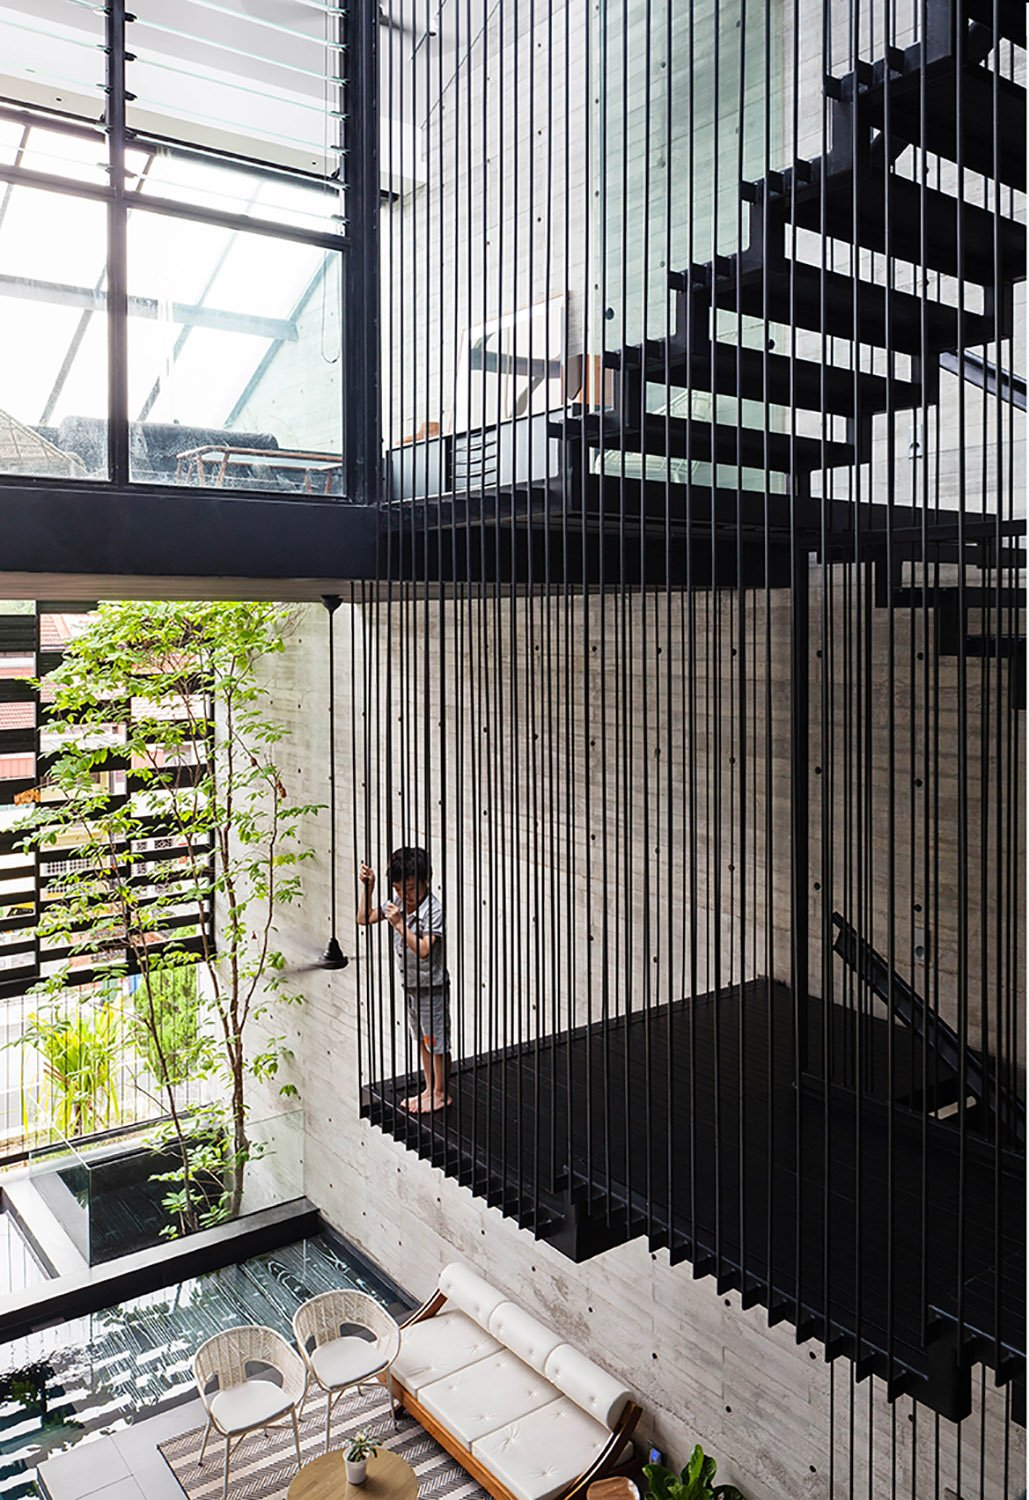 A suspended steel rod staircase forms a key feature in the double volume central atrium. Fabian Ong